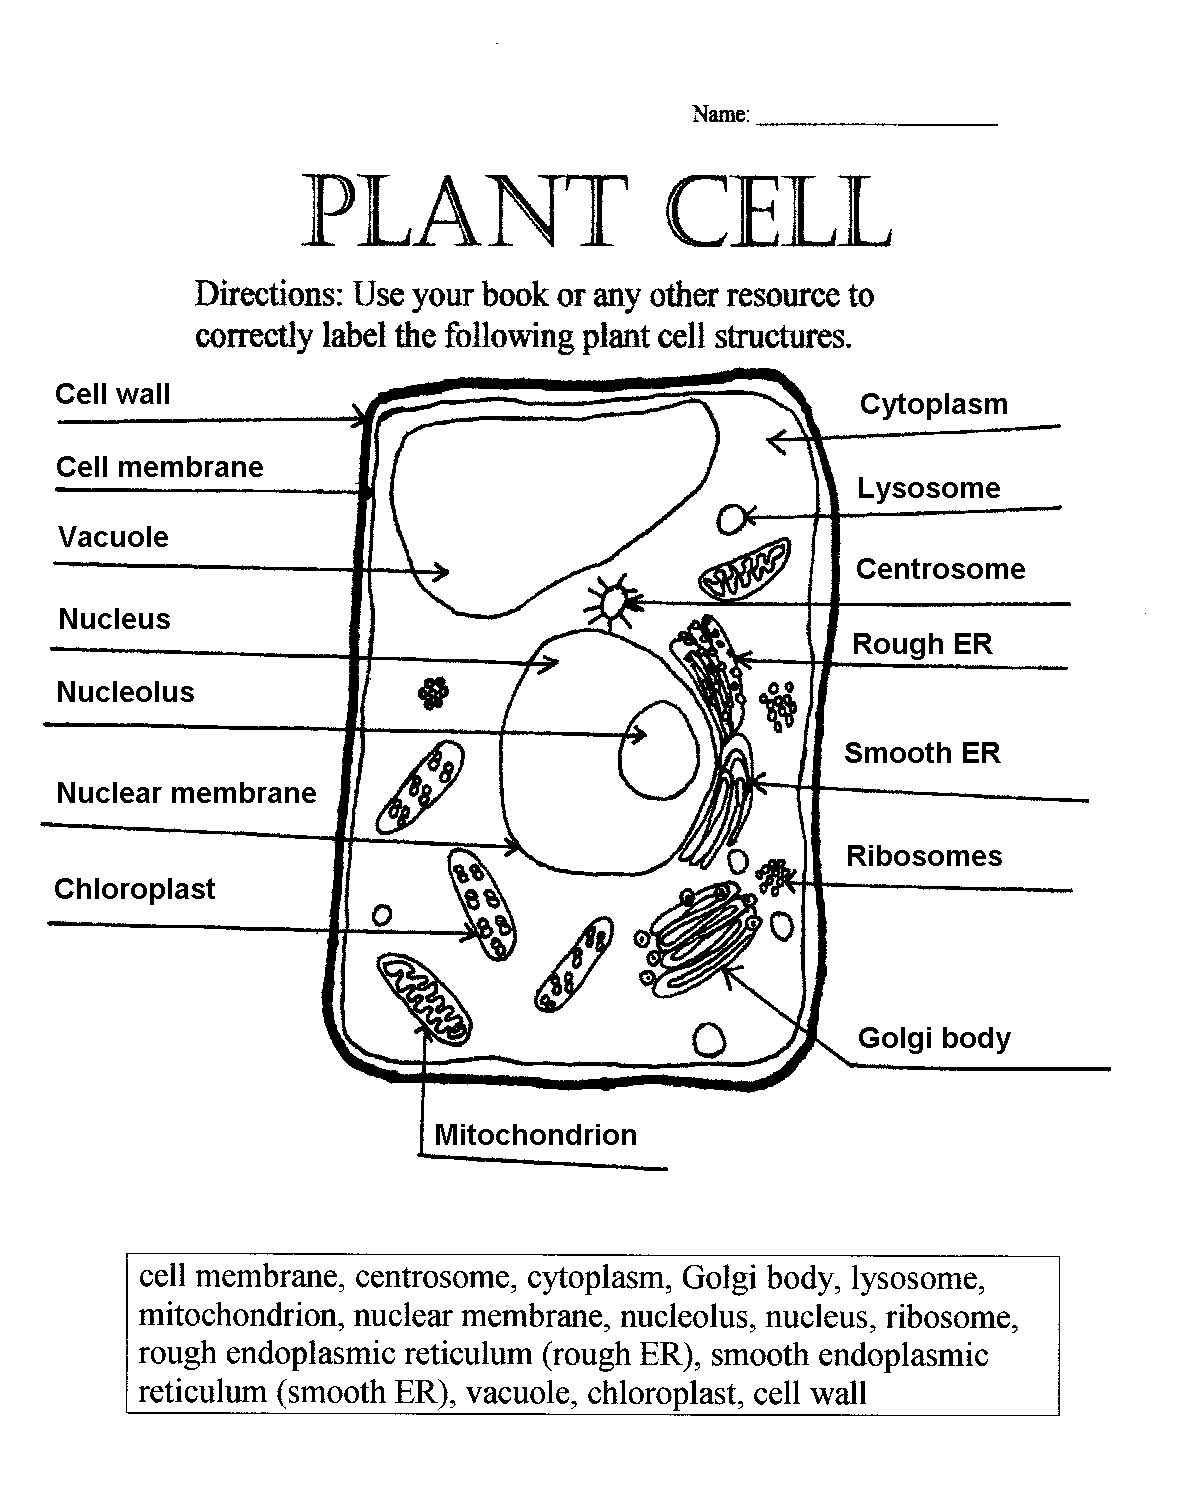 Plant cell parts worksheet with word bank name what makes you plant cell parts worksheet with word bank name what makes you tick animal cell worksheet ccuart Gallery